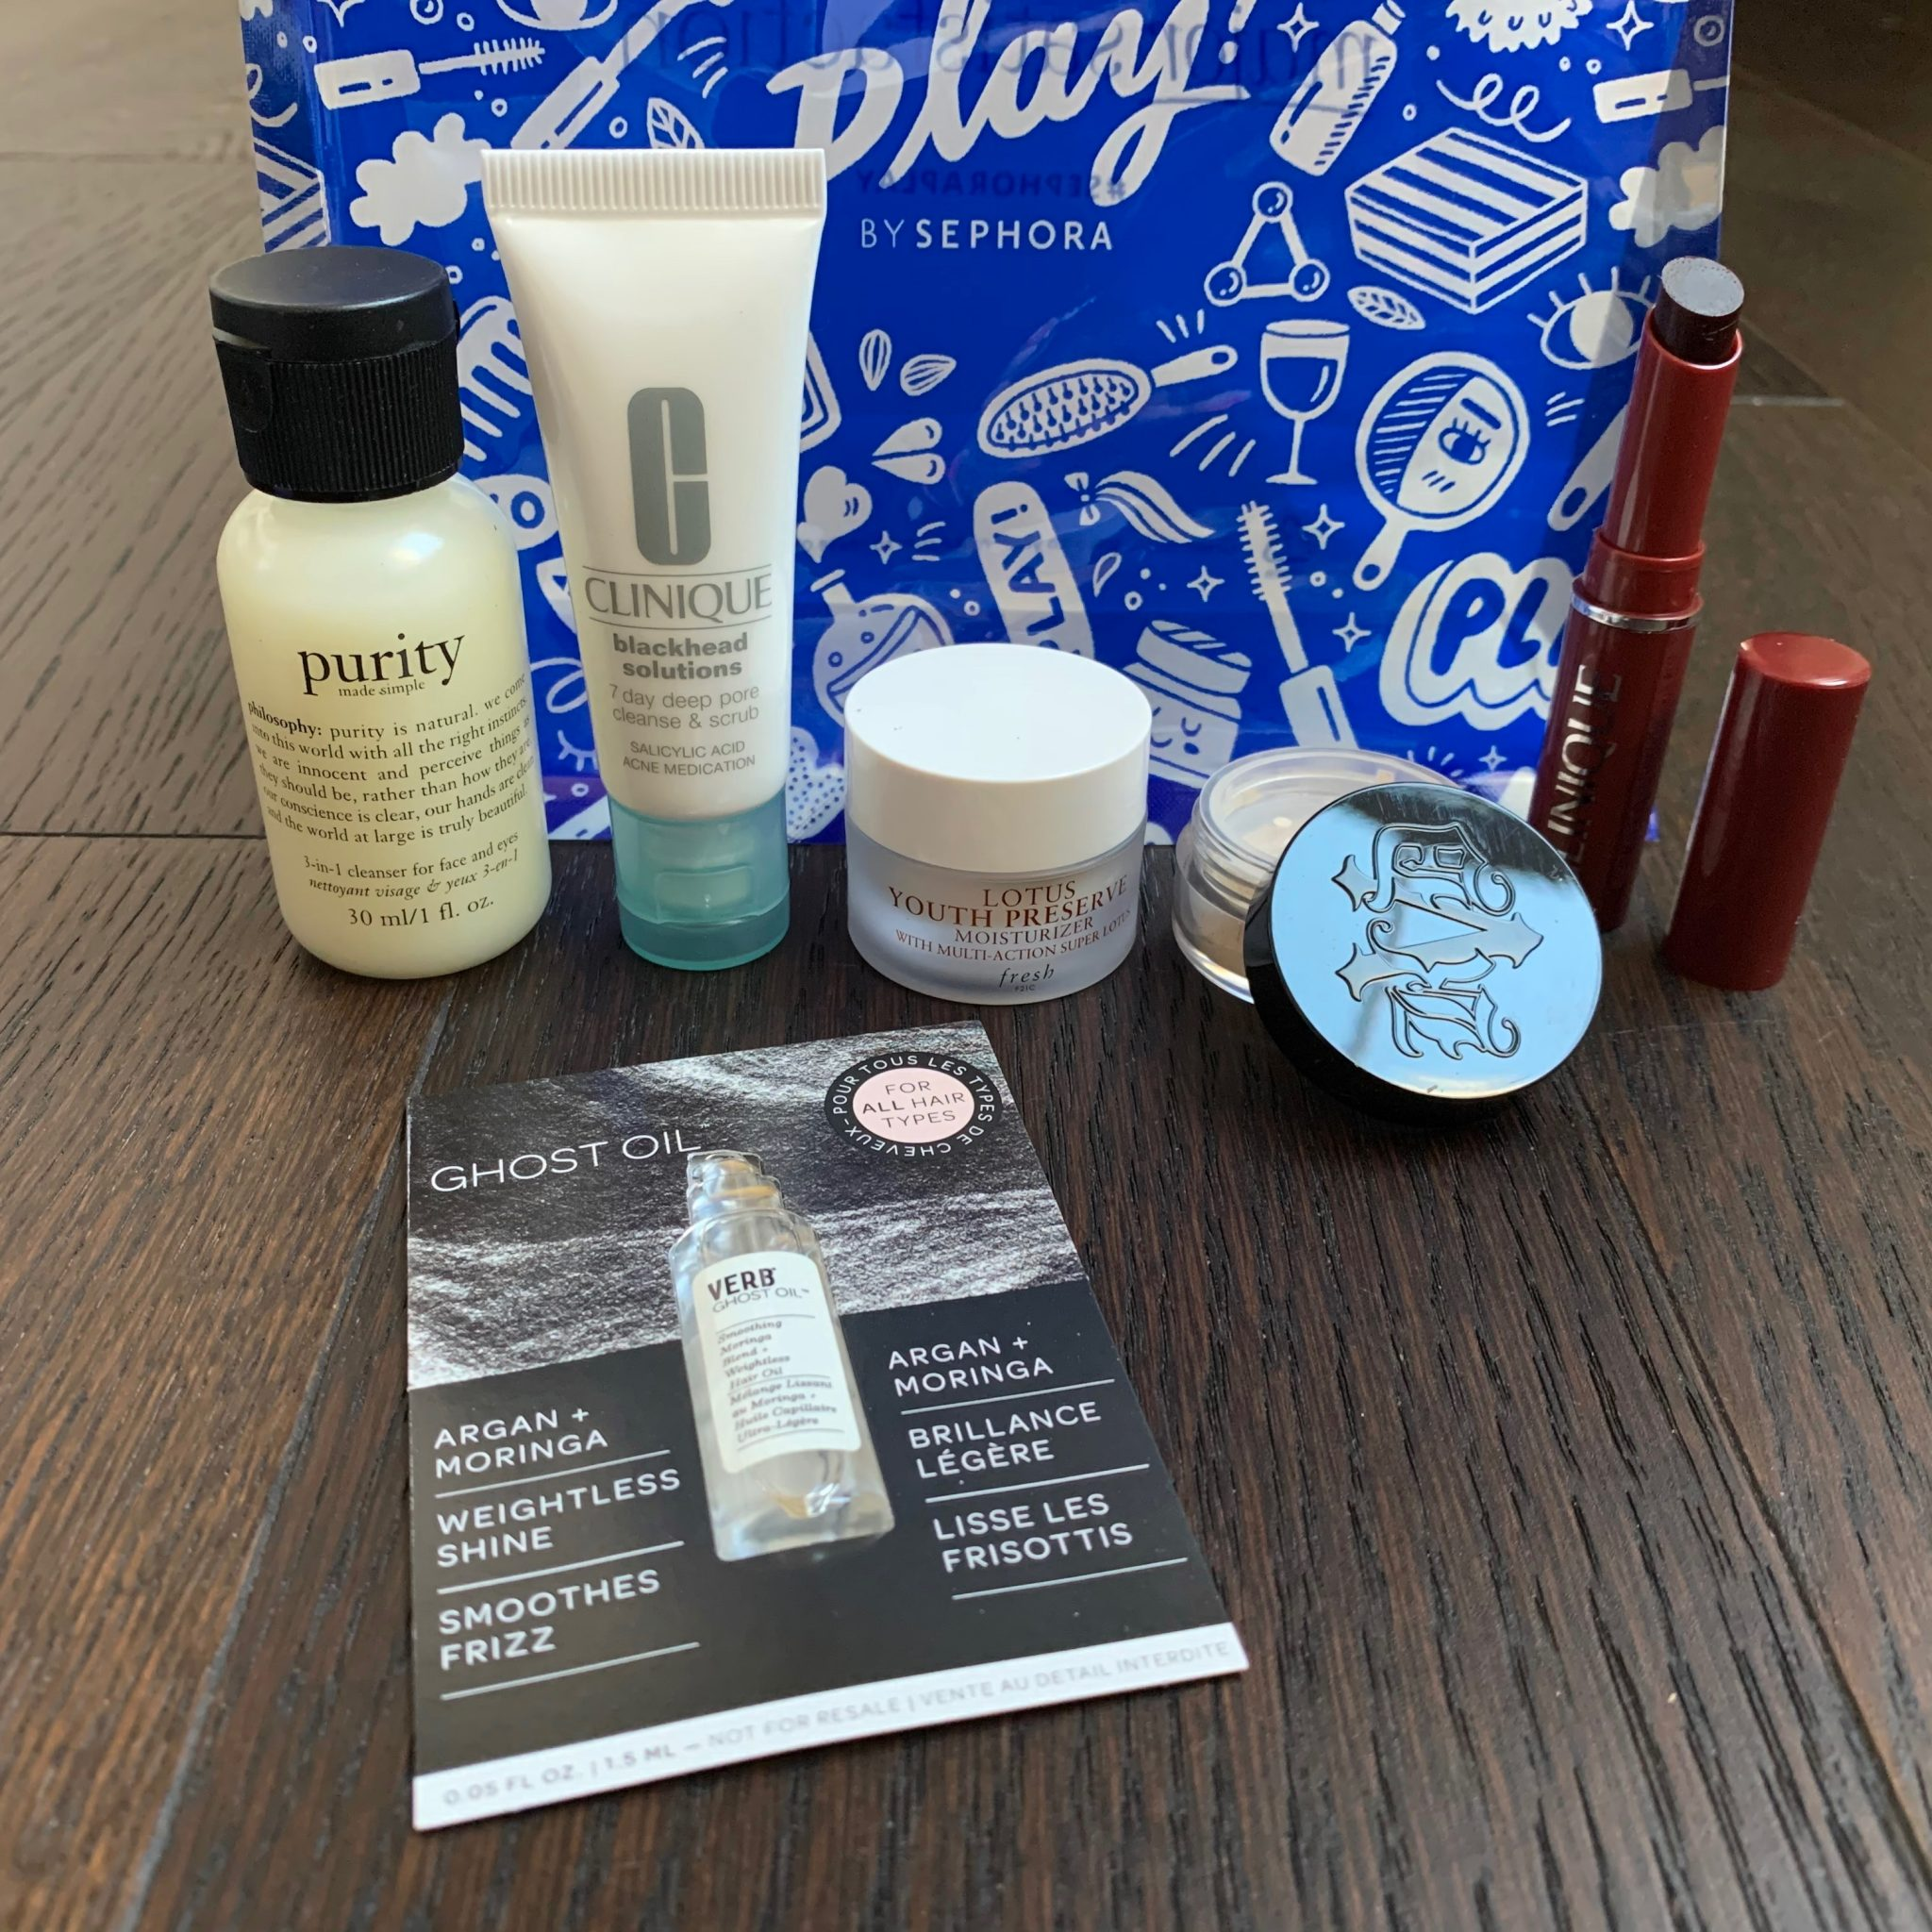 Play! by Sephora Review – February 2020